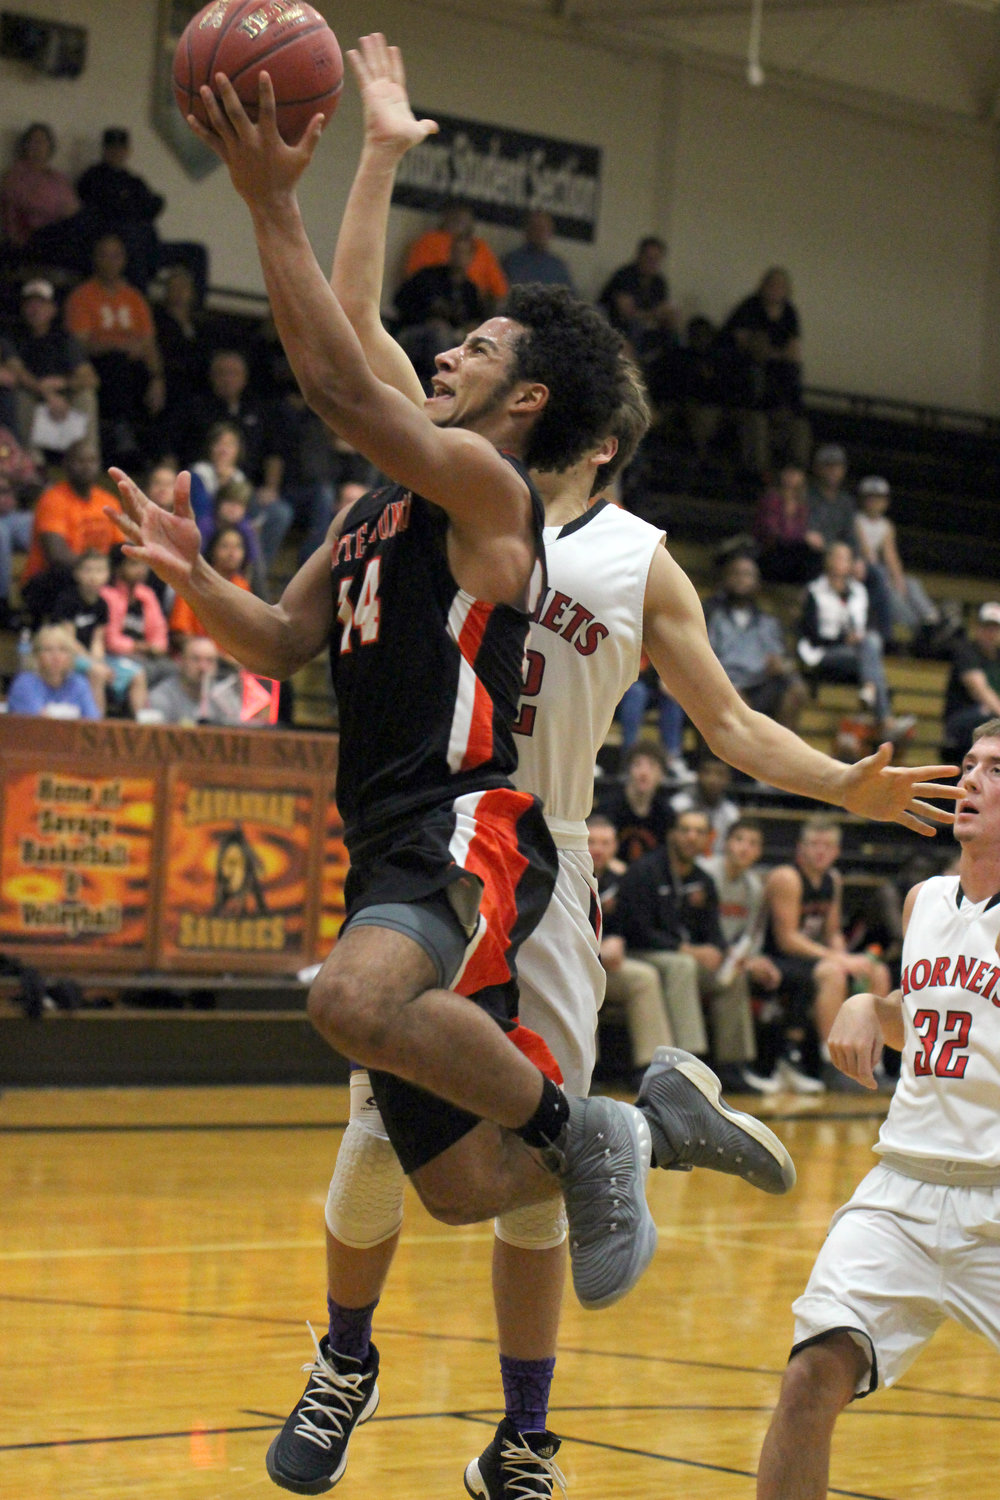 ROSS MARTIN/Citizen photo Platte County senior Kobe Cummings goes in for a layup just before the halftime buzzer against Chillicothe in the championship game of the 89th annual Savannah Invitational on Saturday, Dec. 2 at Savannah High School in Savannah, Mo. Platte County held on for a 50-49 win to claim its first tournament title since 2009.